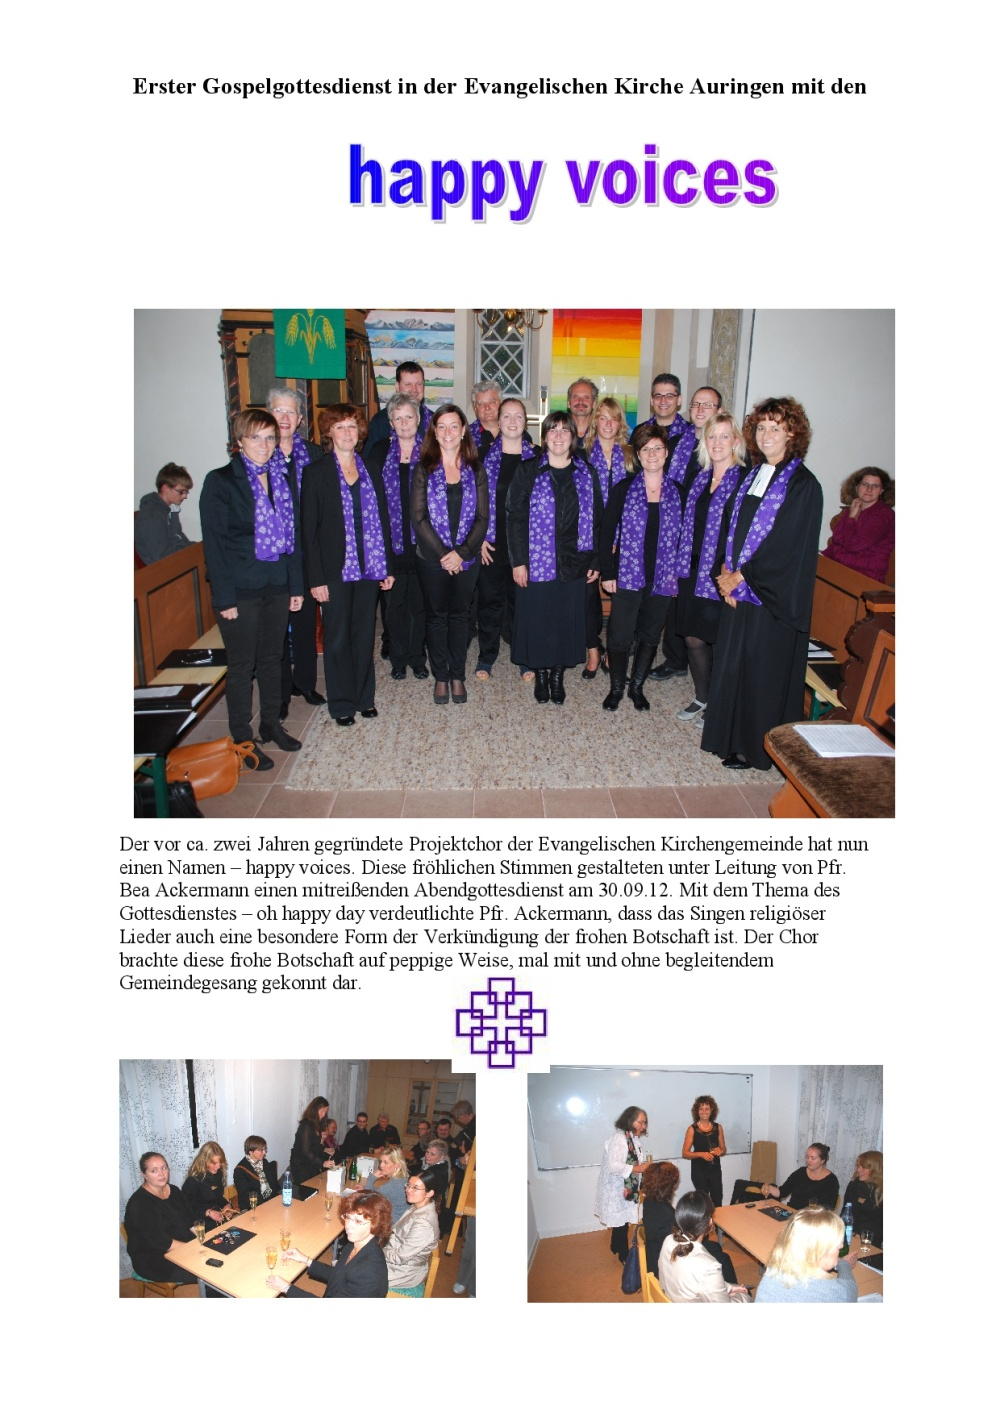 28-Erster Gospelgodi-happy voices 30.09.12-001